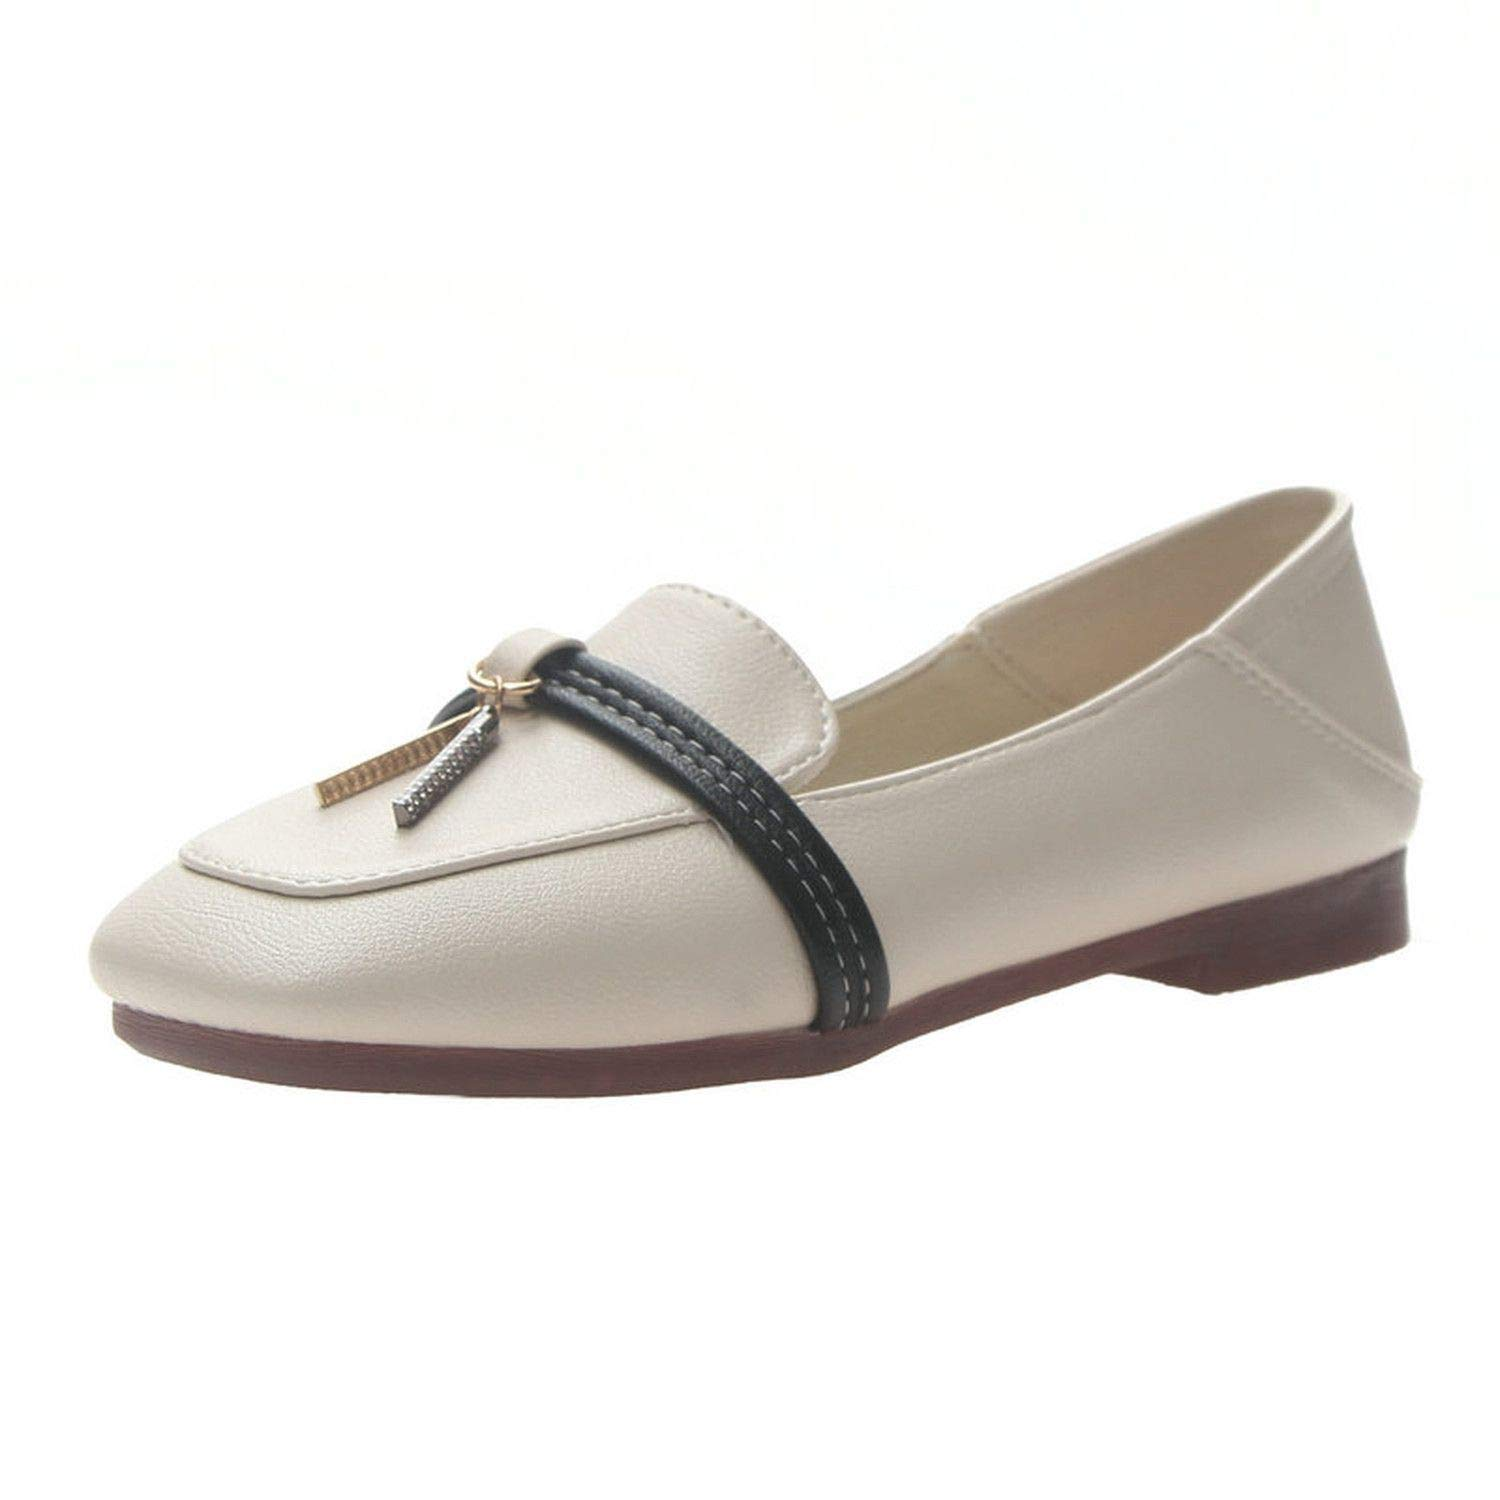 Luck Man Concise Spring//Autumn Female Flats Womens Pointed Toes Low Heels Silp-On Shoes Woman Metal Casual Shoes